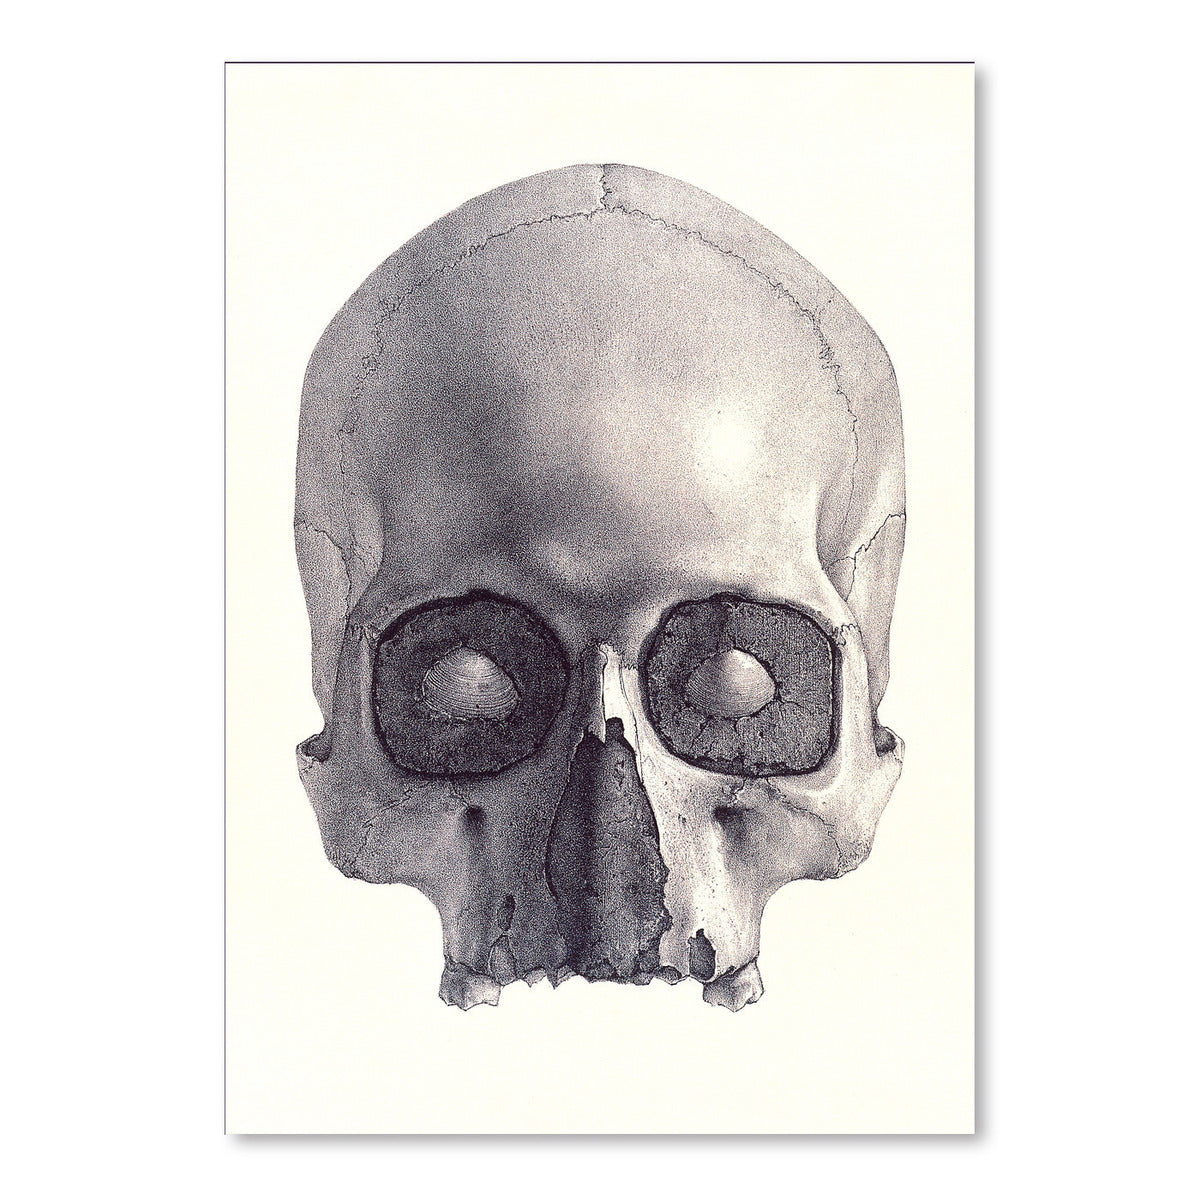 Jawless Skull by Found Image Press Art Print - Art Print - Americanflat